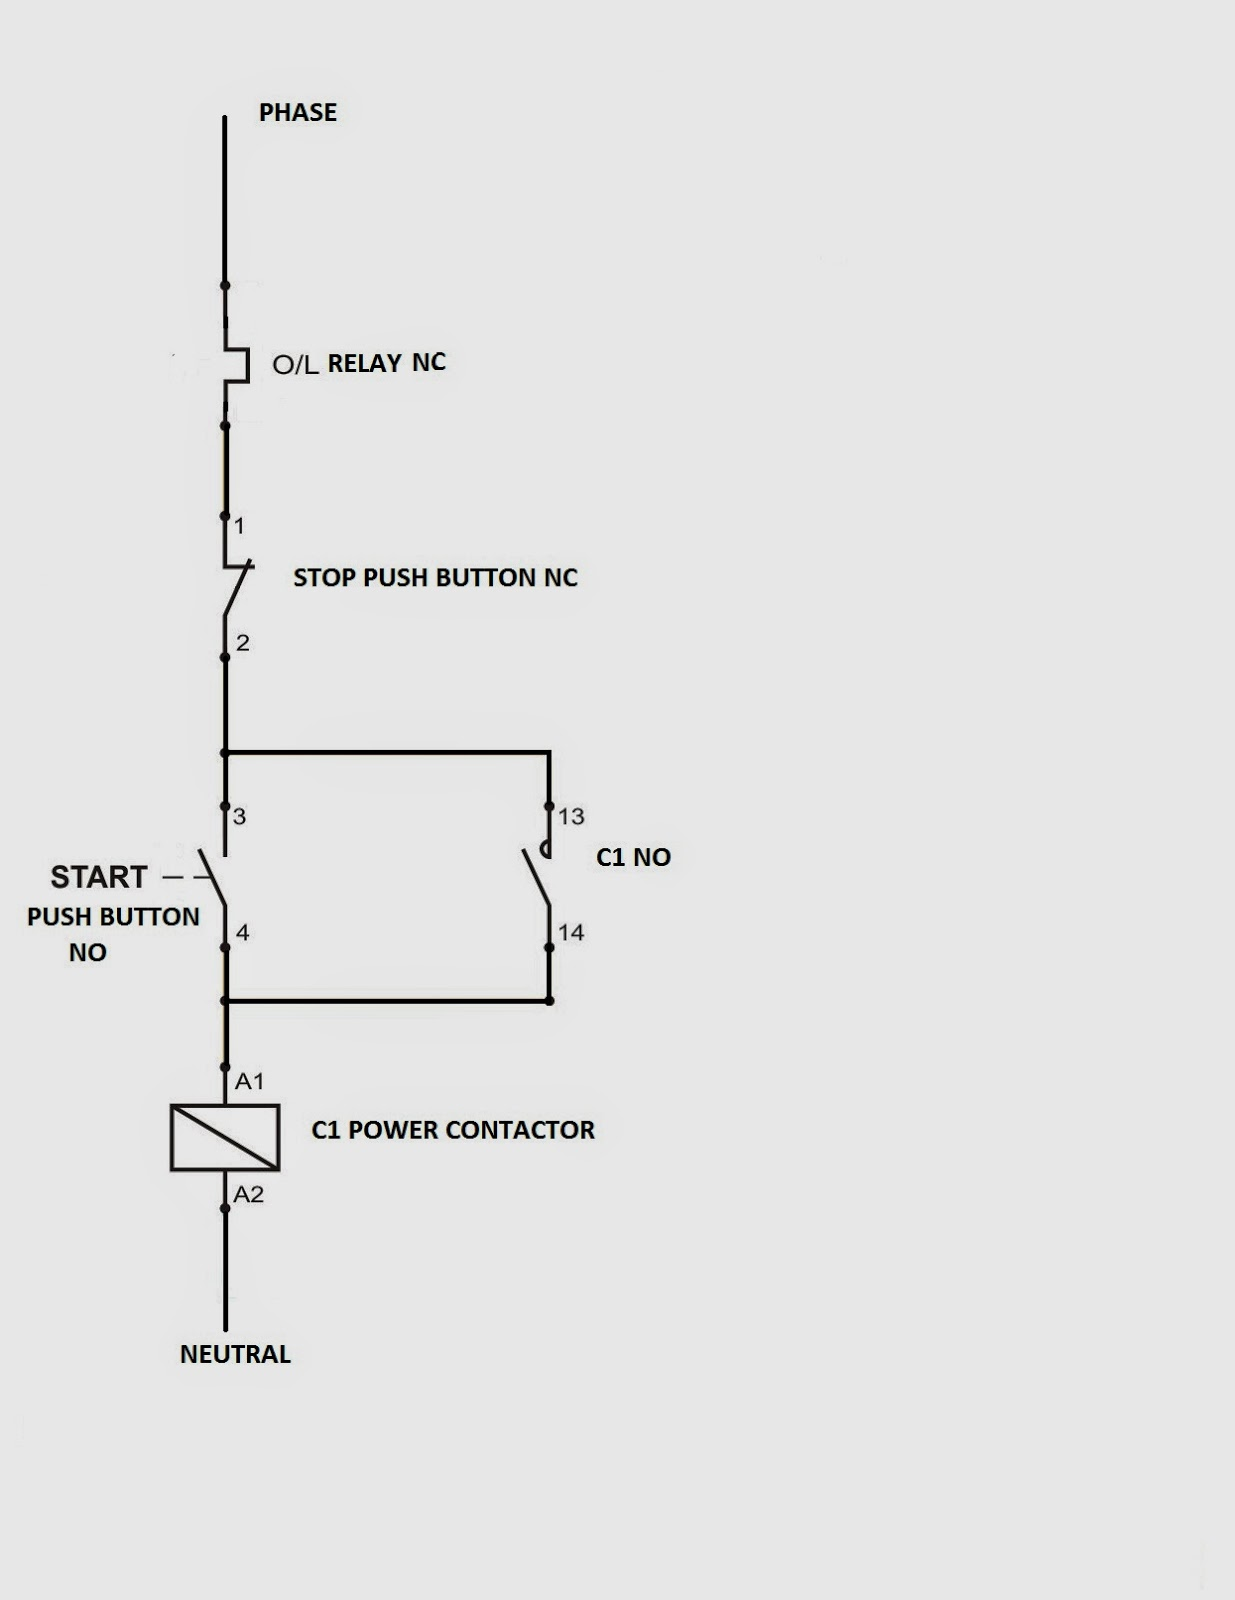 small resolution of 1 when start button normally open no is pressed supply is connected to the motor through power contactor c1